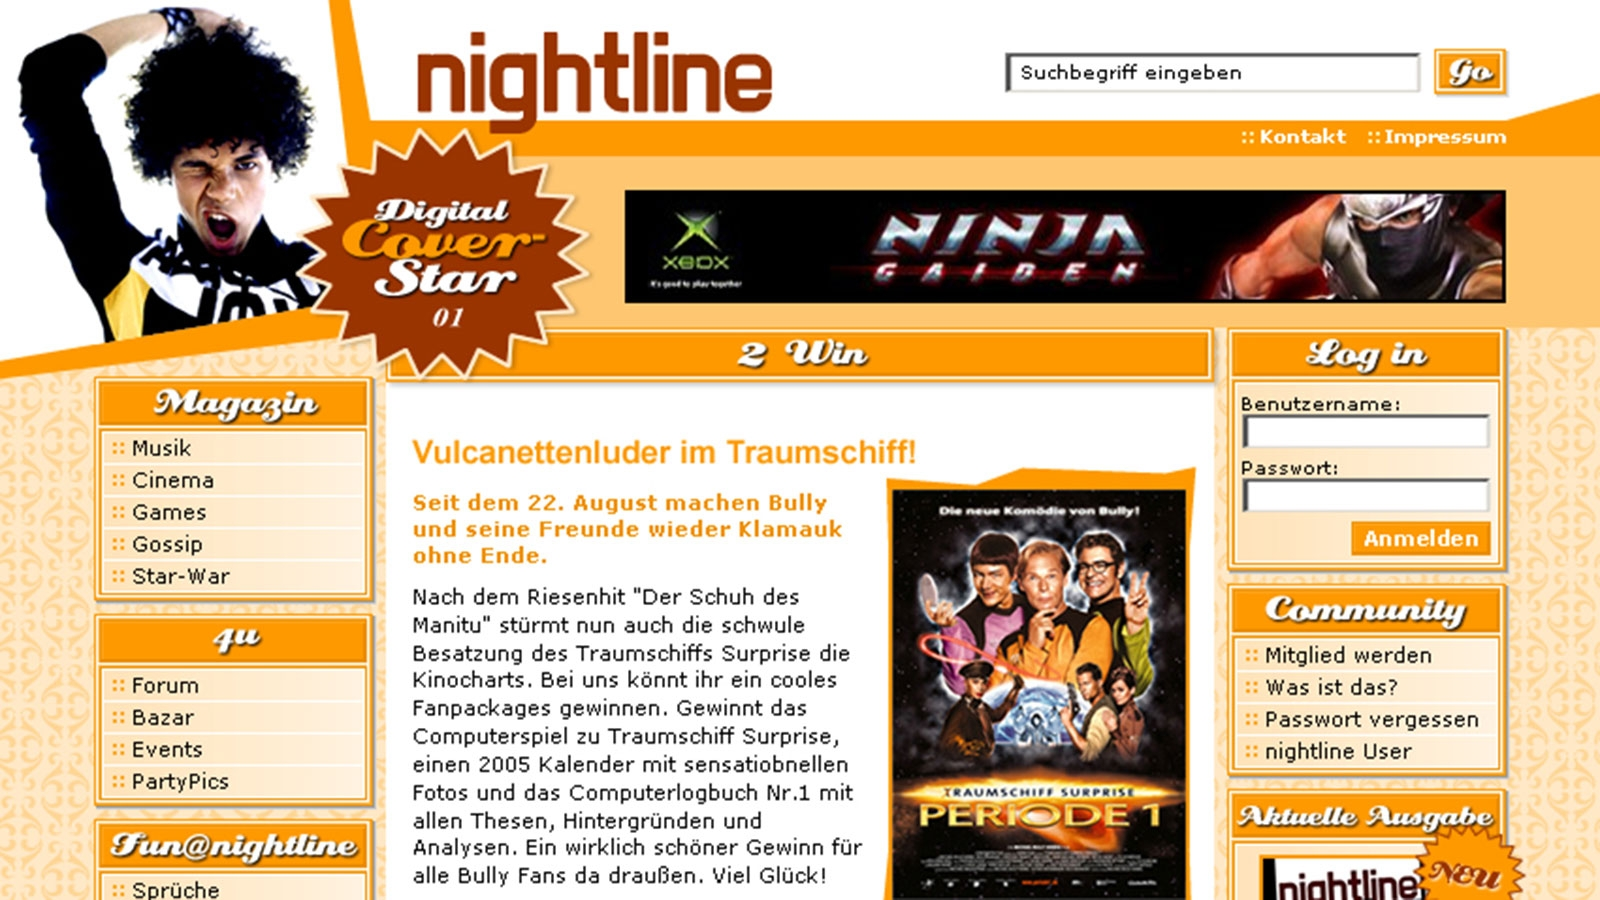 Nightline | nightline.cc | 2004 (Screen Only 02) © echonet communication